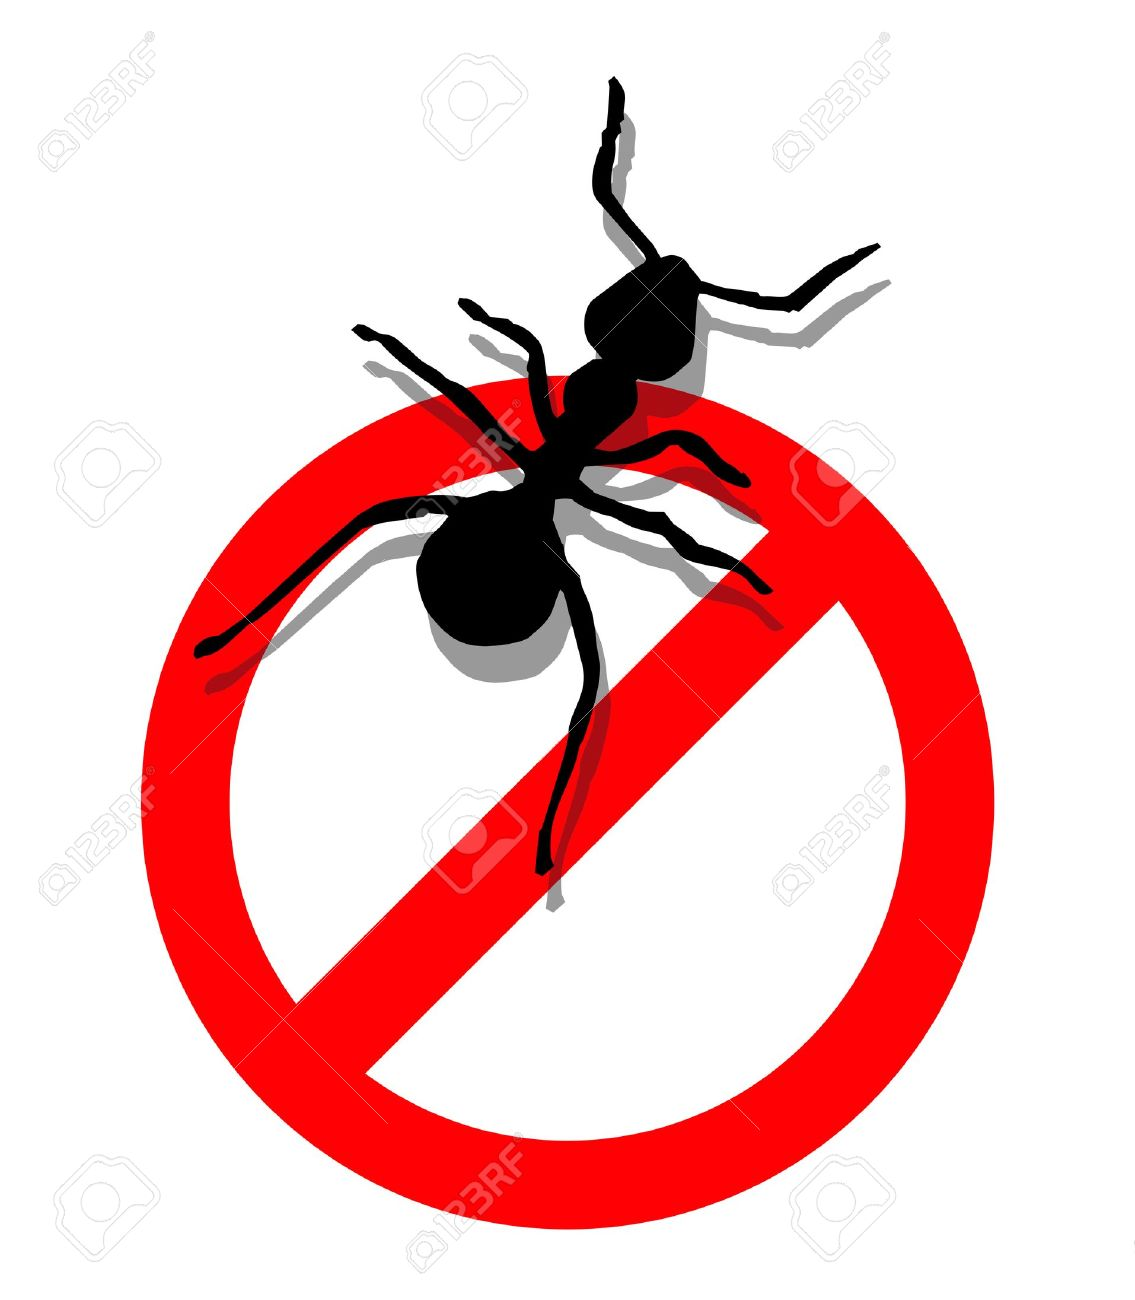 Illustration Of Forbidden To Enter Ants. Royalty Free Cliparts.